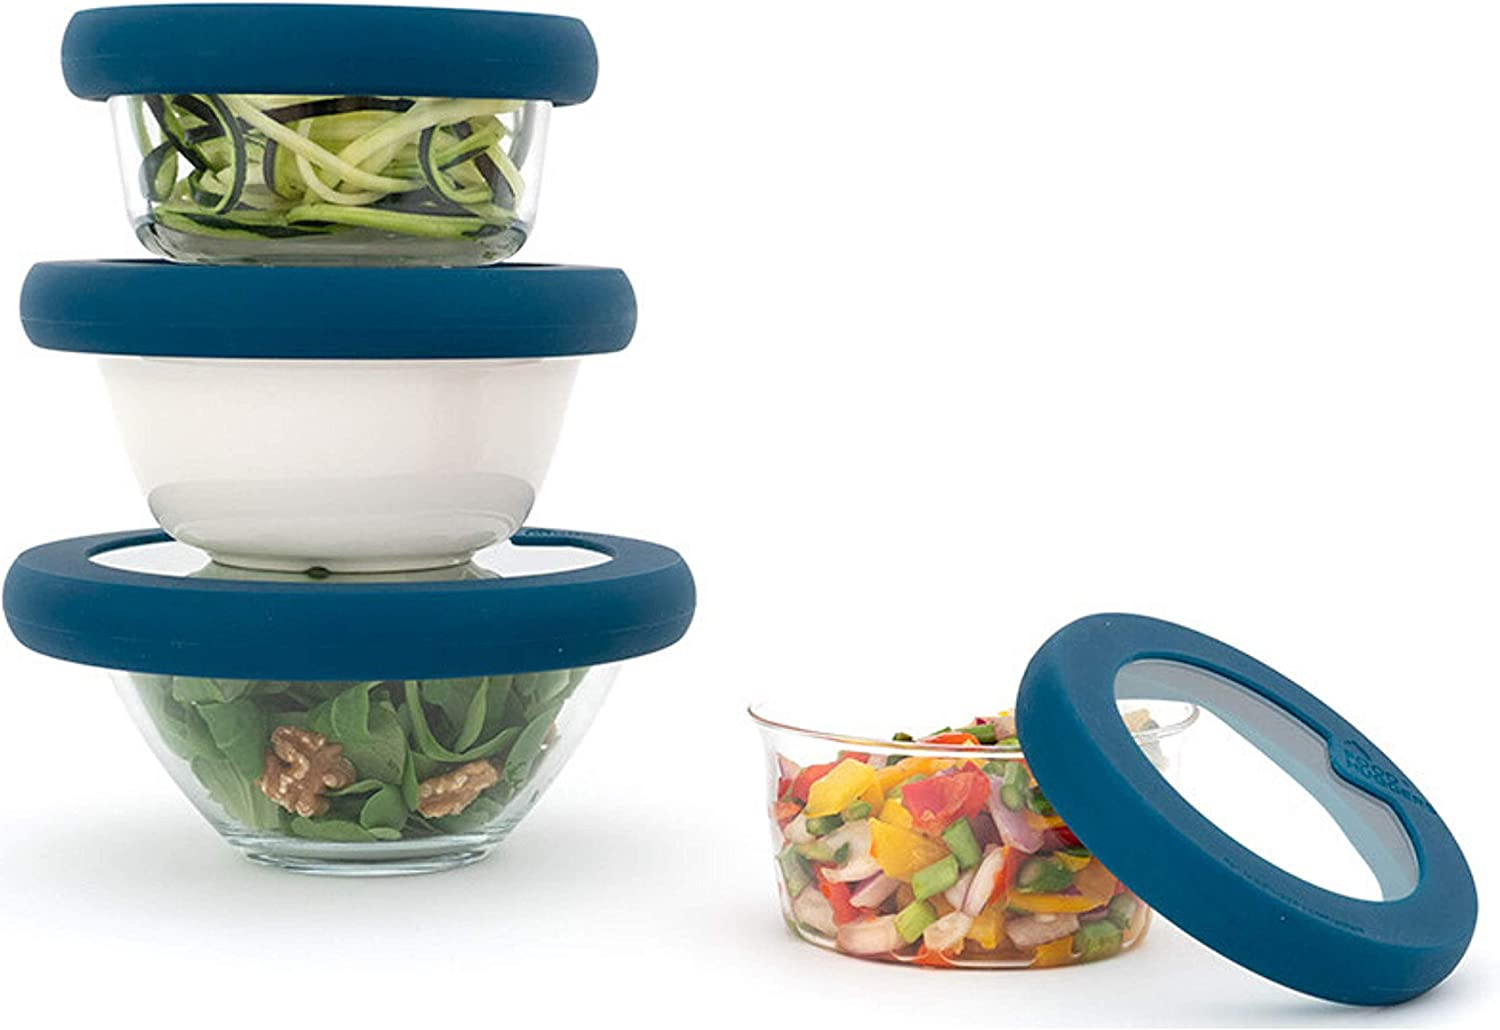 Food Huggers Lids, Set of Four, Teal, Extra Small, Small, Medium and Large(XS,S,M,L)